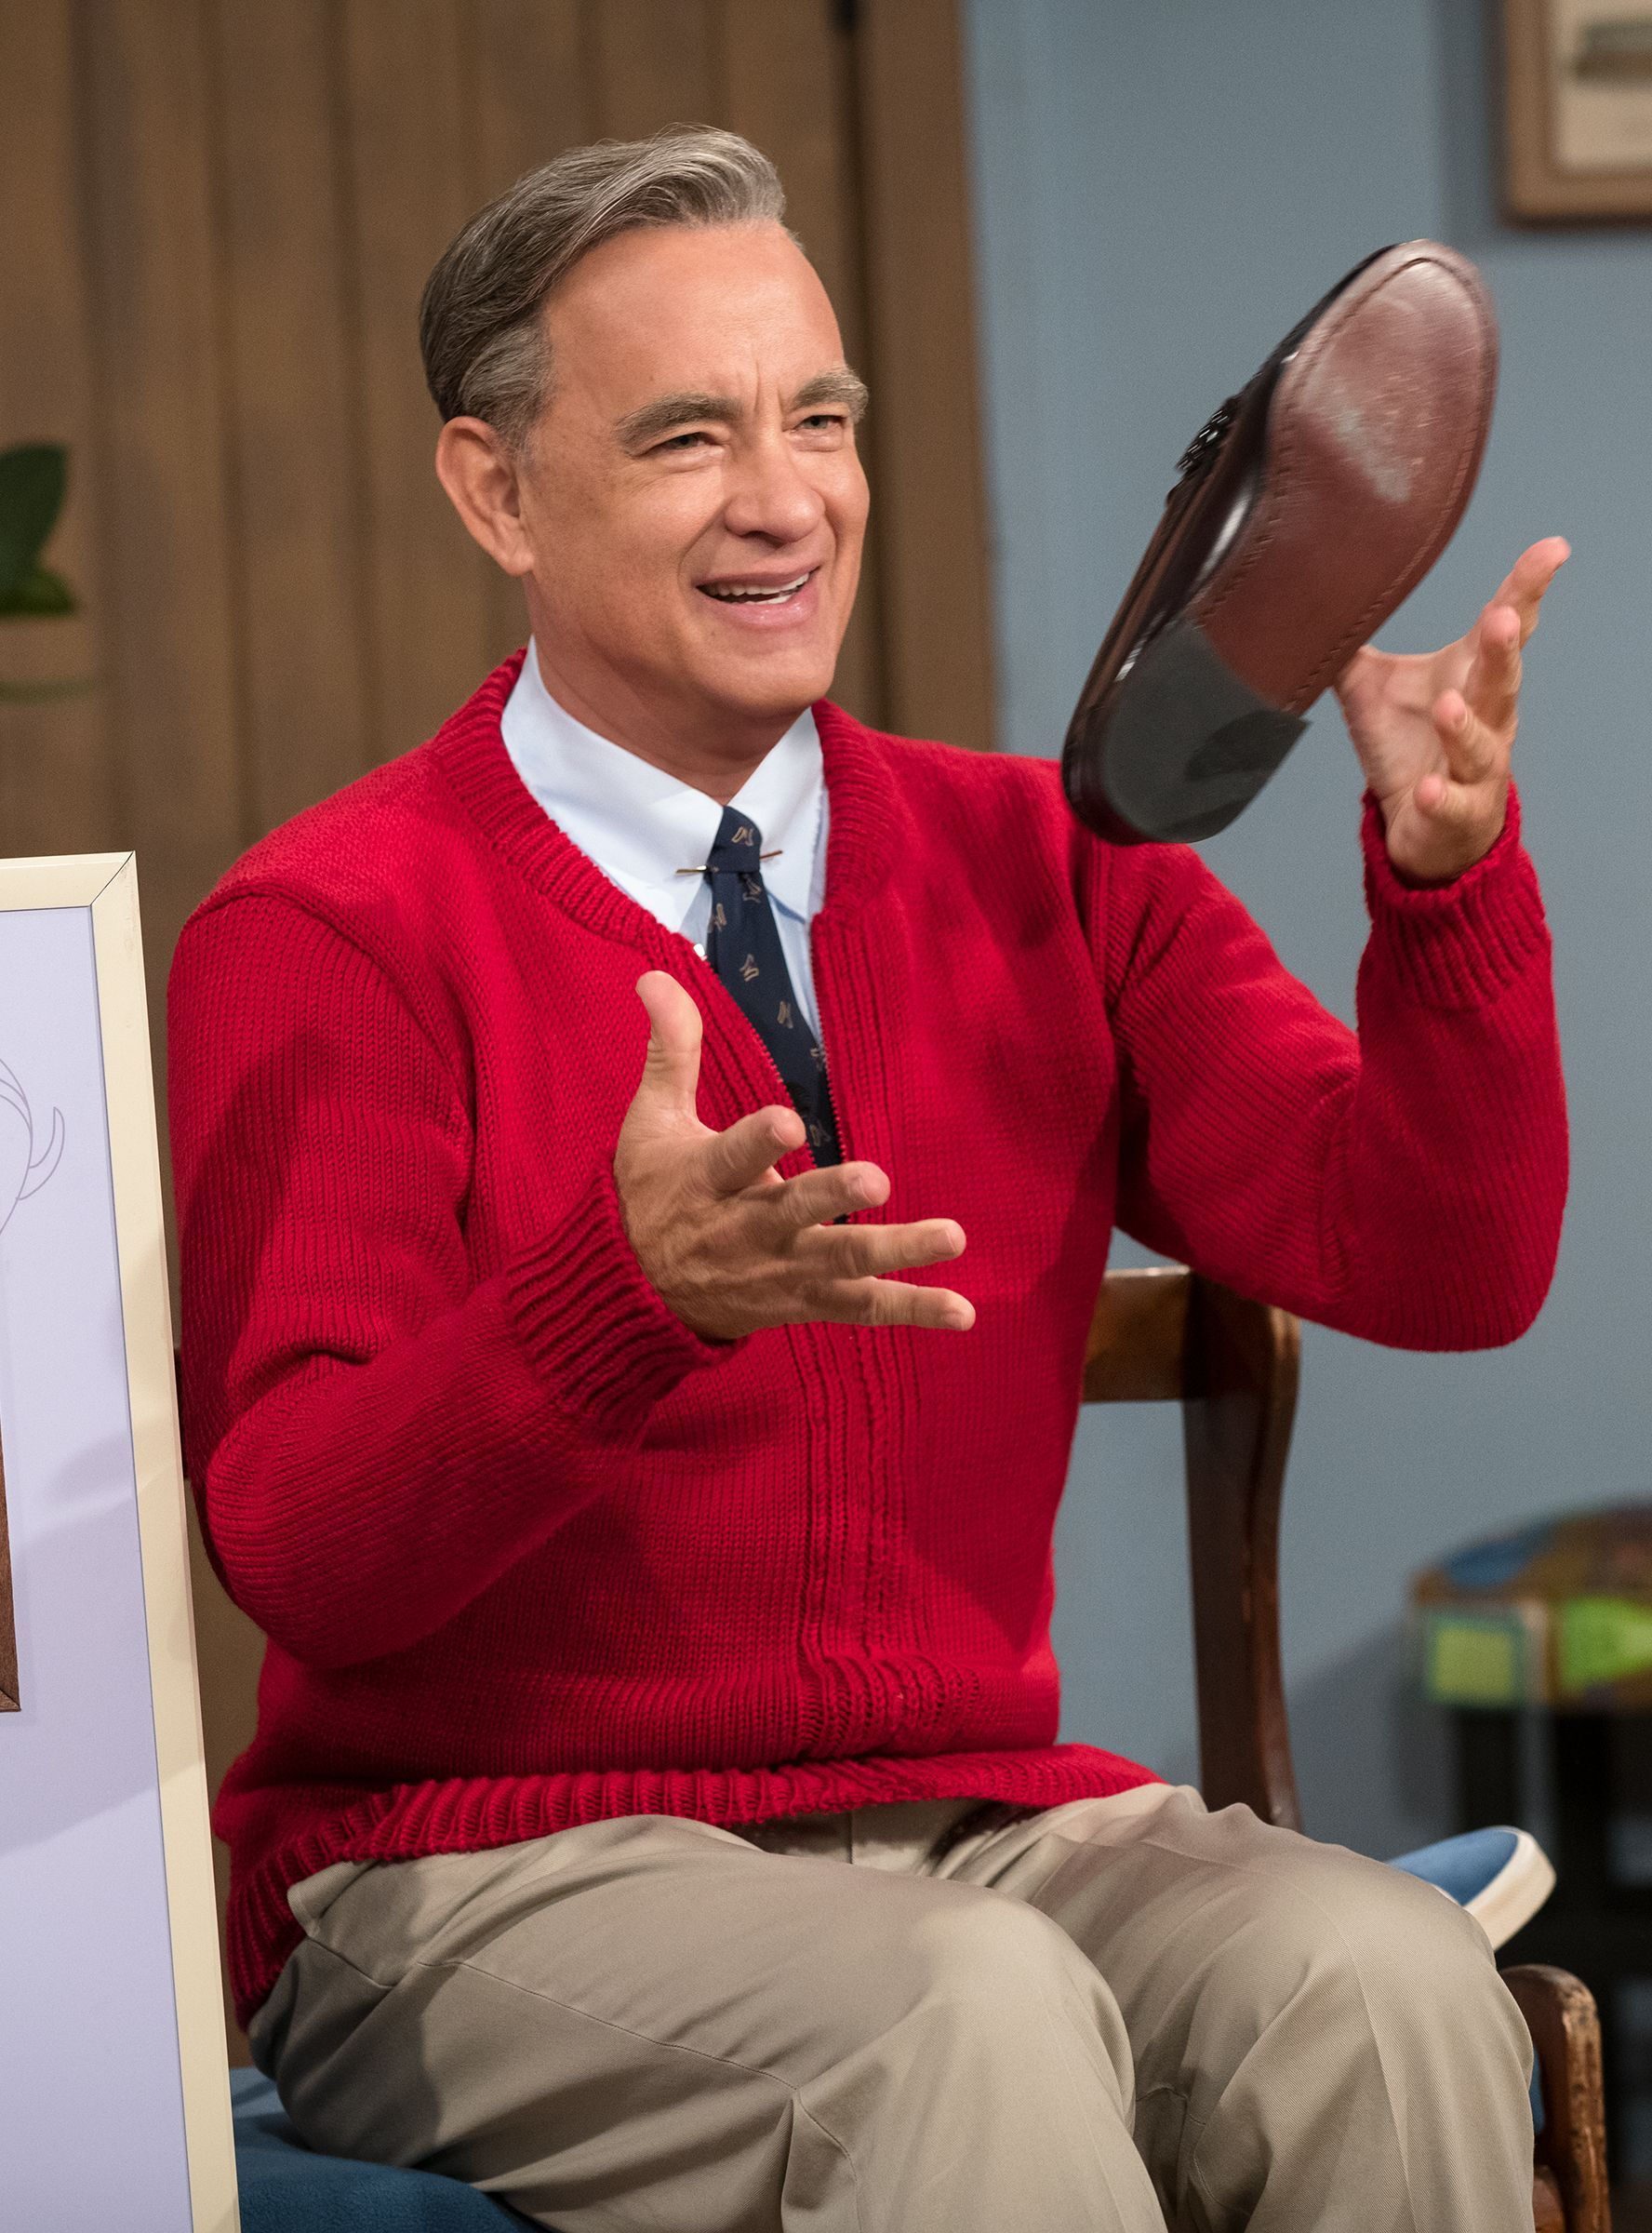 Tom Hanks In The New Mr Rogers Trailer Will Make You Weepy With Images Tom Hanks Mr Rogers Movie Tom Hanks Movies